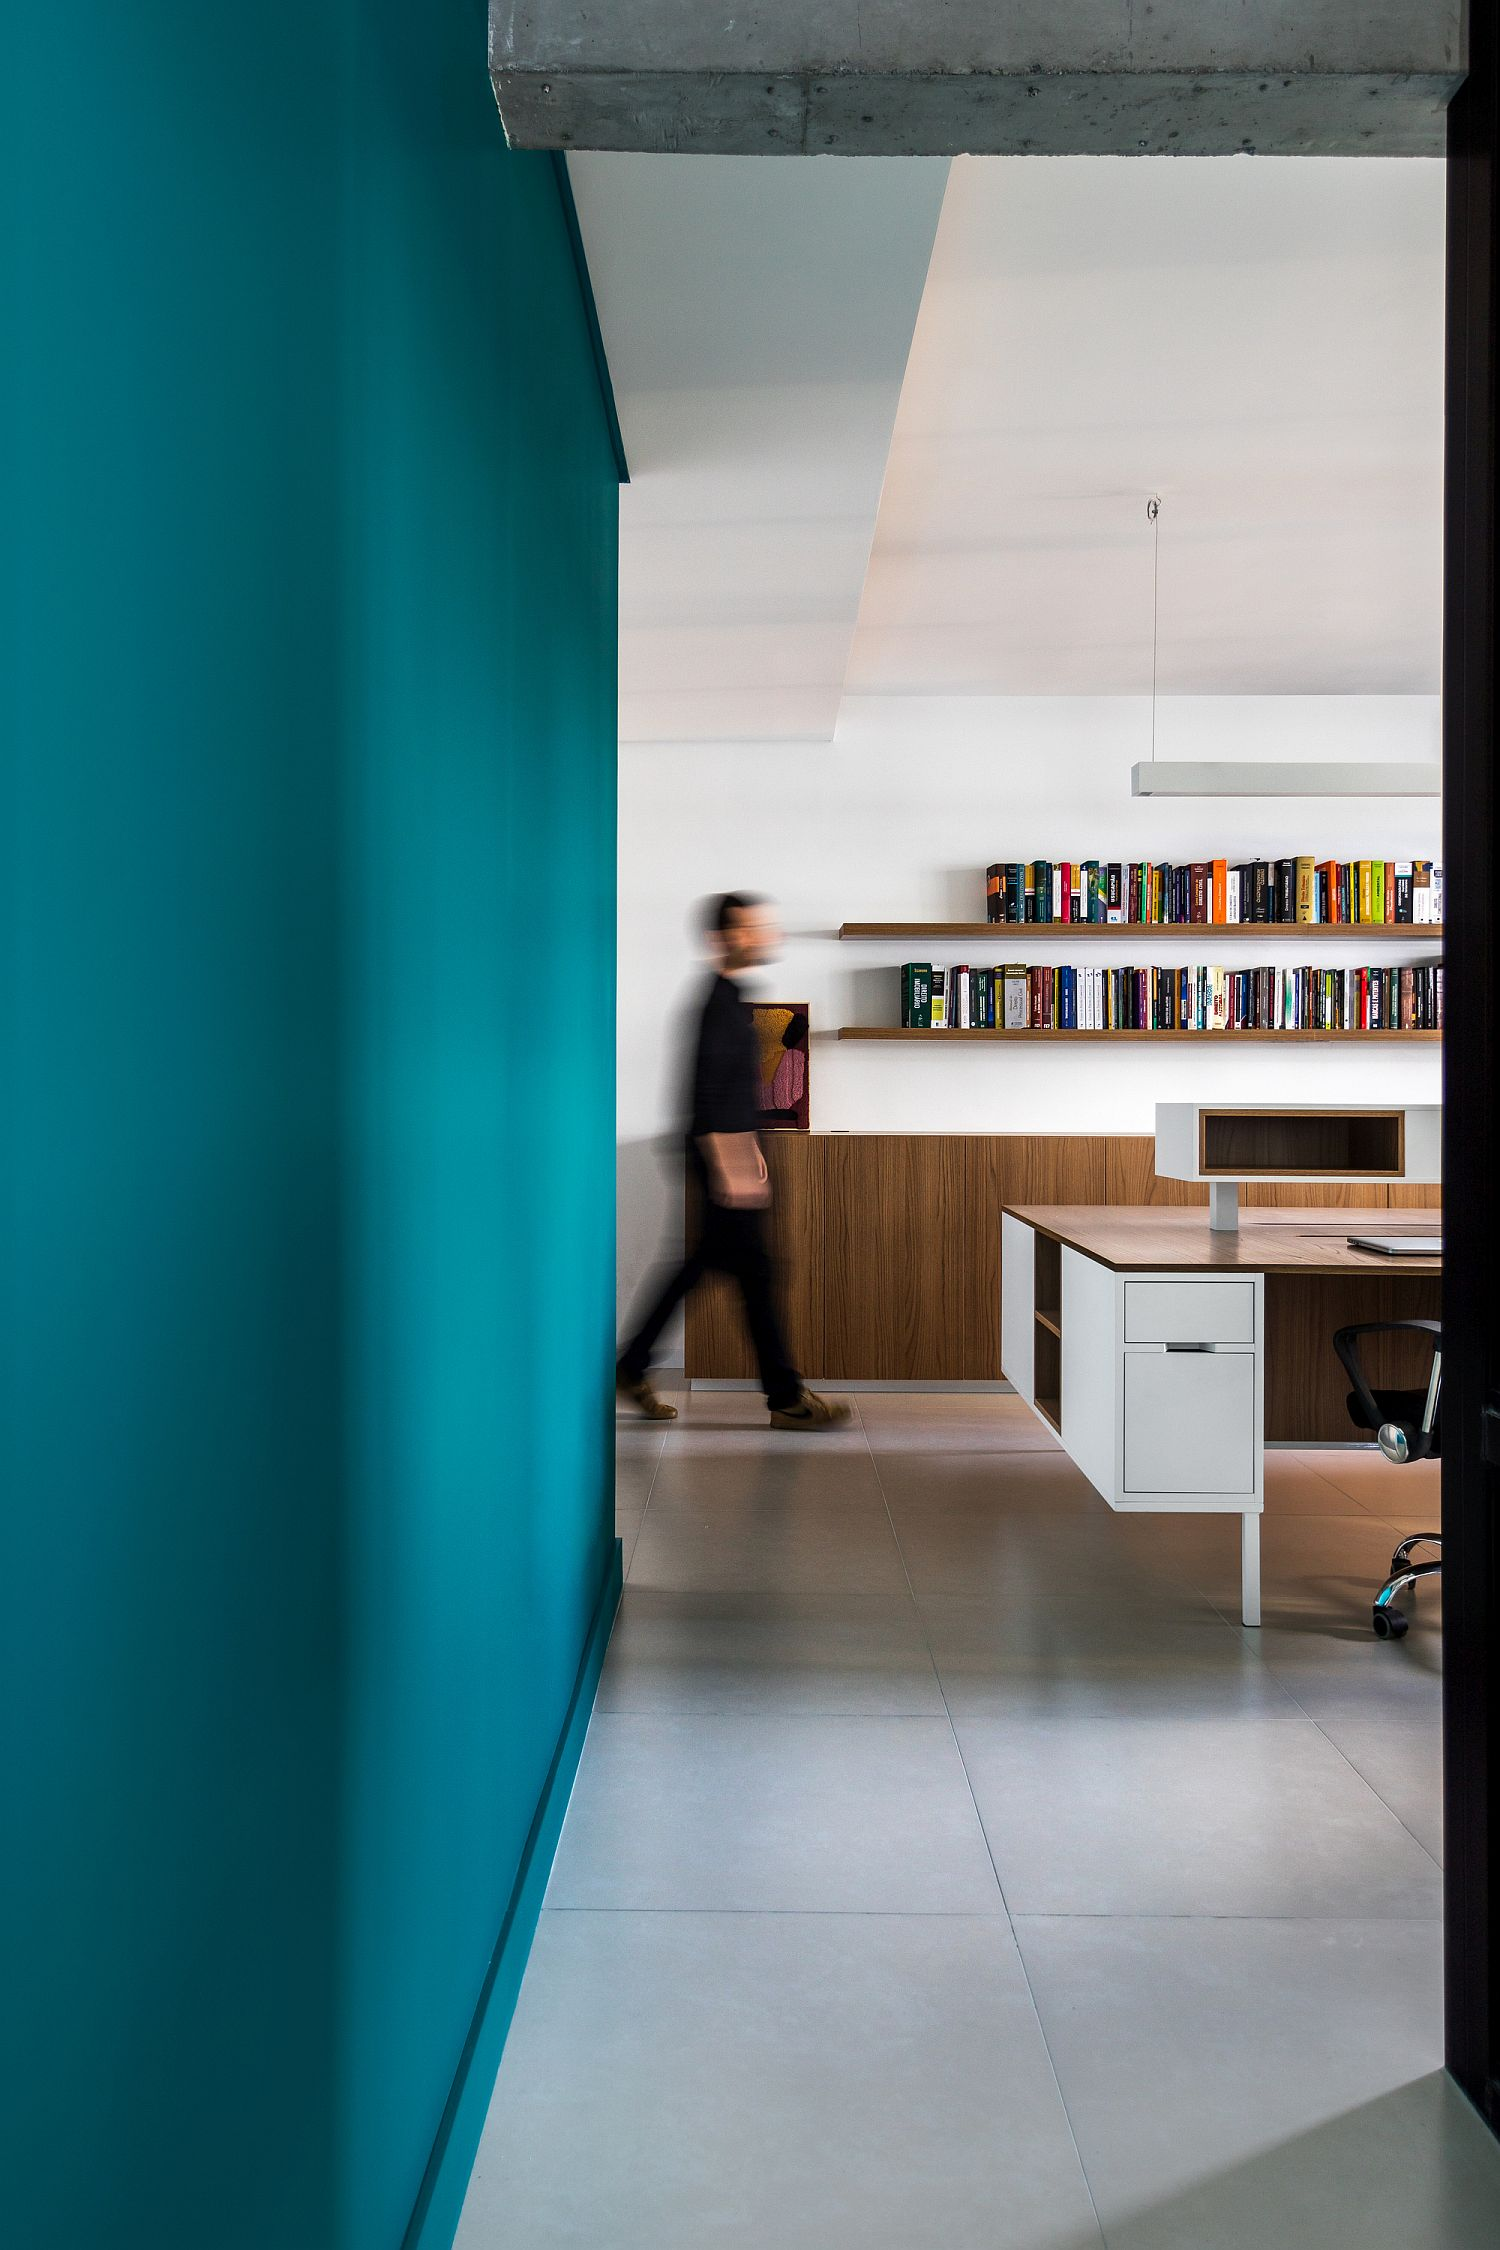 Exquisite design of the modern AB&D Office in Brazil